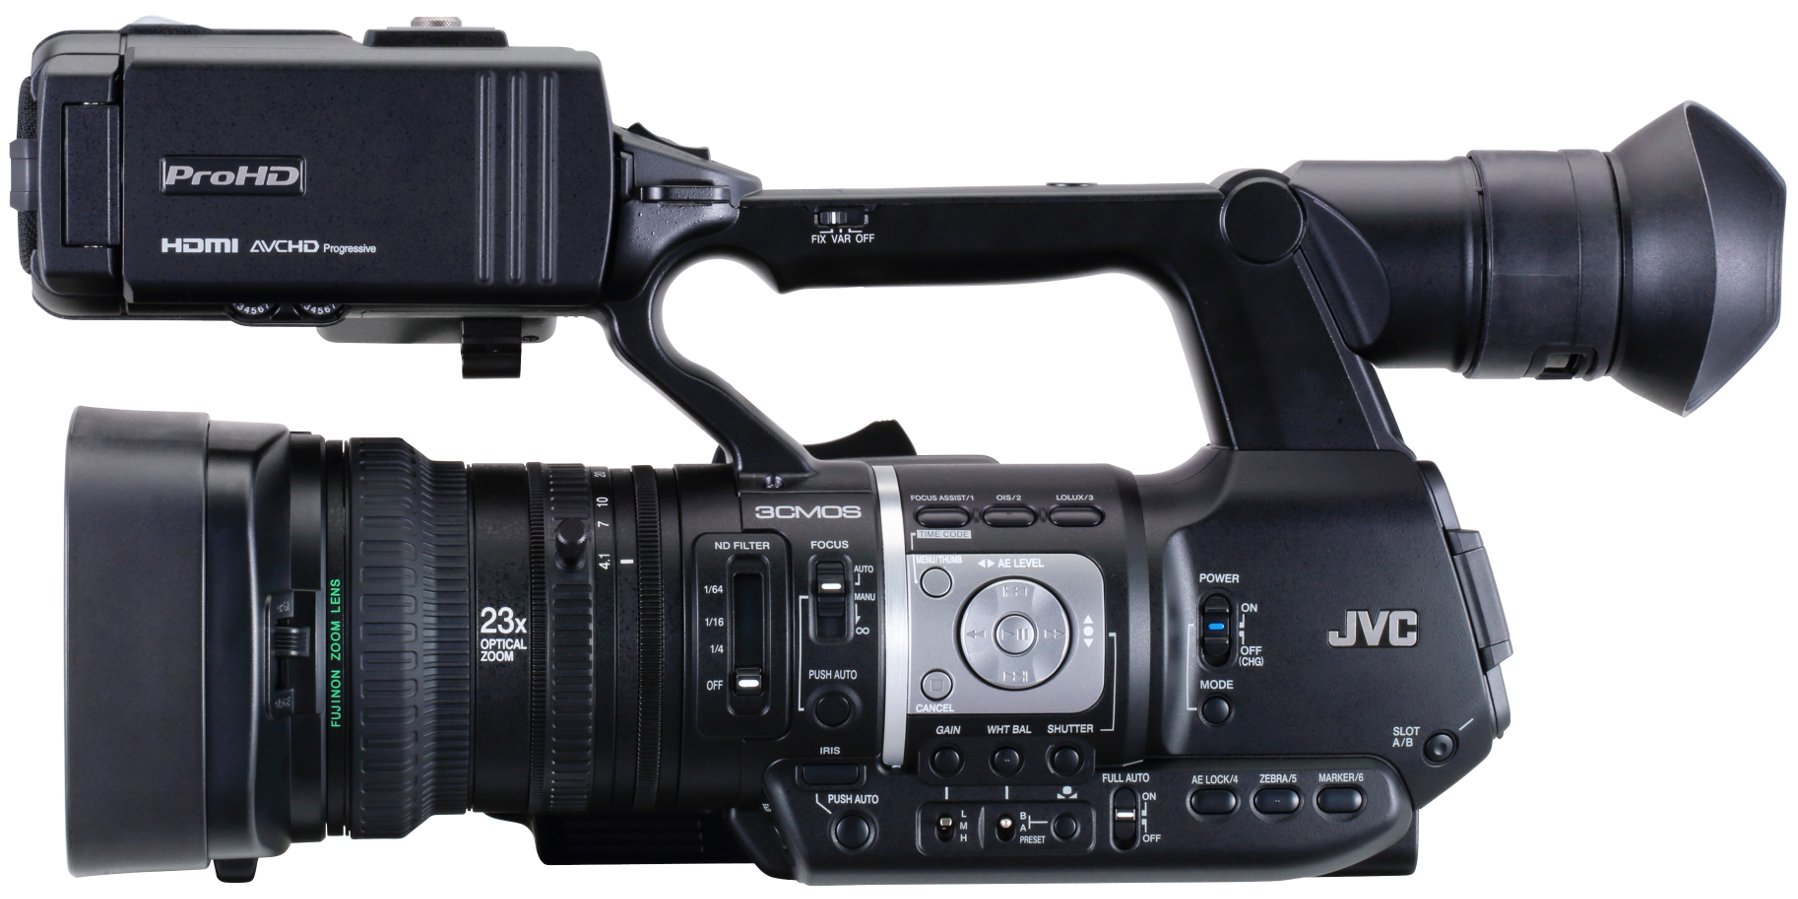 Gy Hm620u By Jvc Gyhm620u Full Compass Systems Sony Pxw X70 Professional Xdcam Handycam X 70 Original 100 Our Part